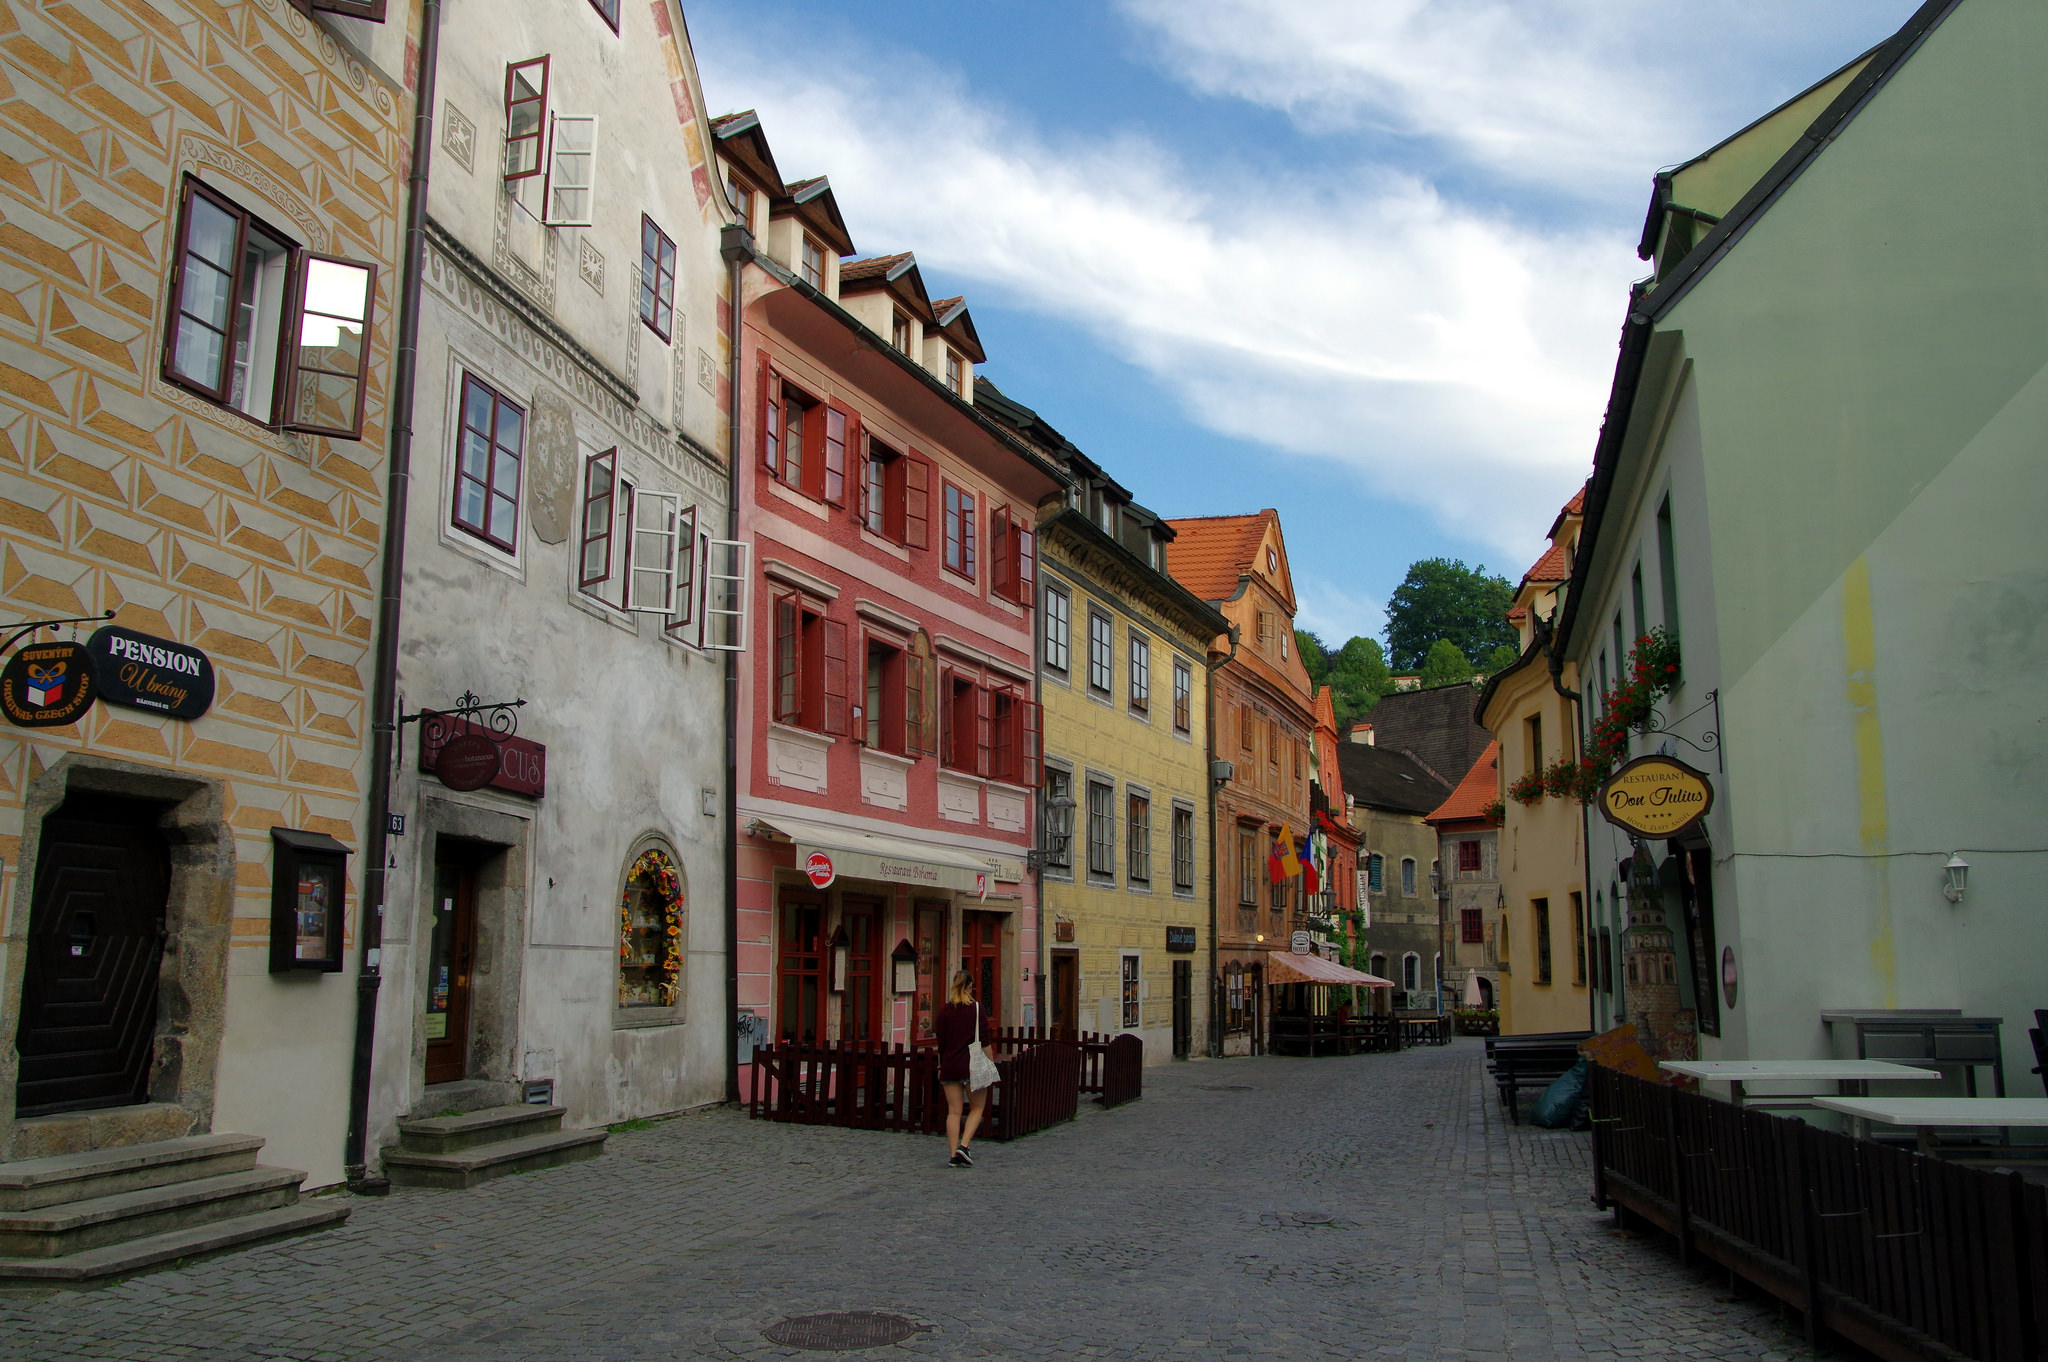 Cesky Krumlov is situated in the South Bohemian Region